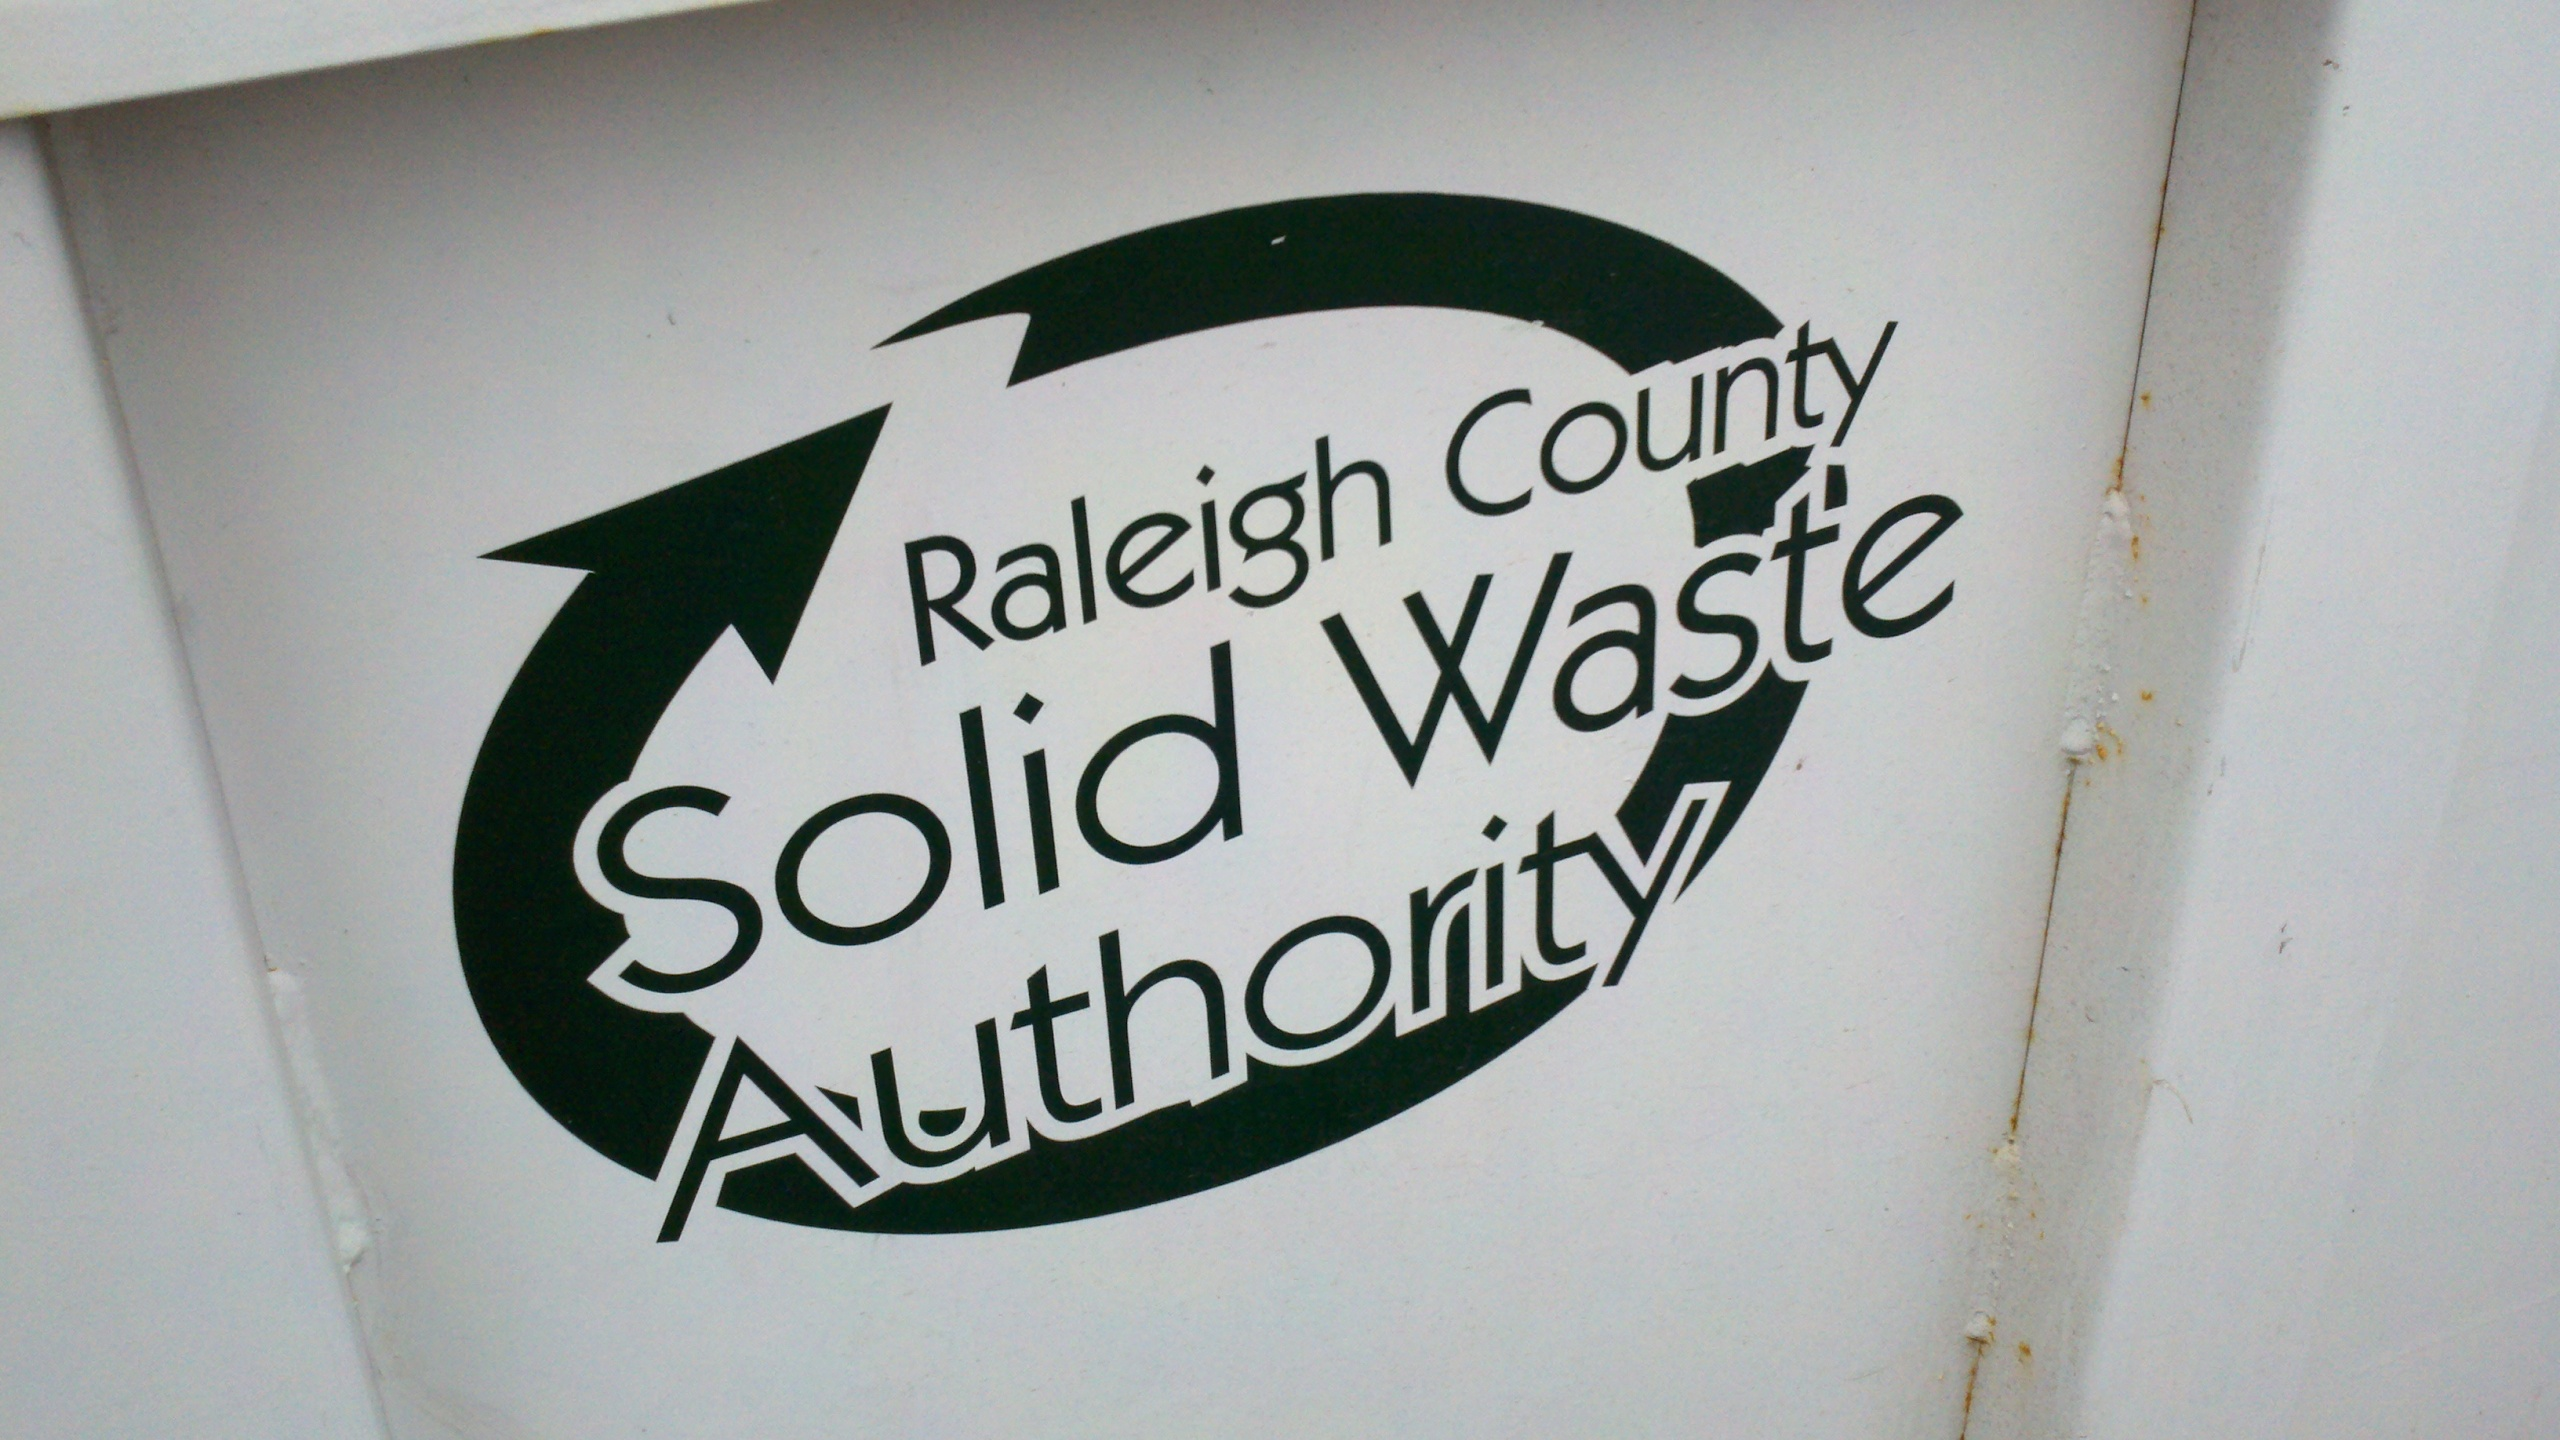 Ral County Solid Waste_1533919380023.jpg.jpg